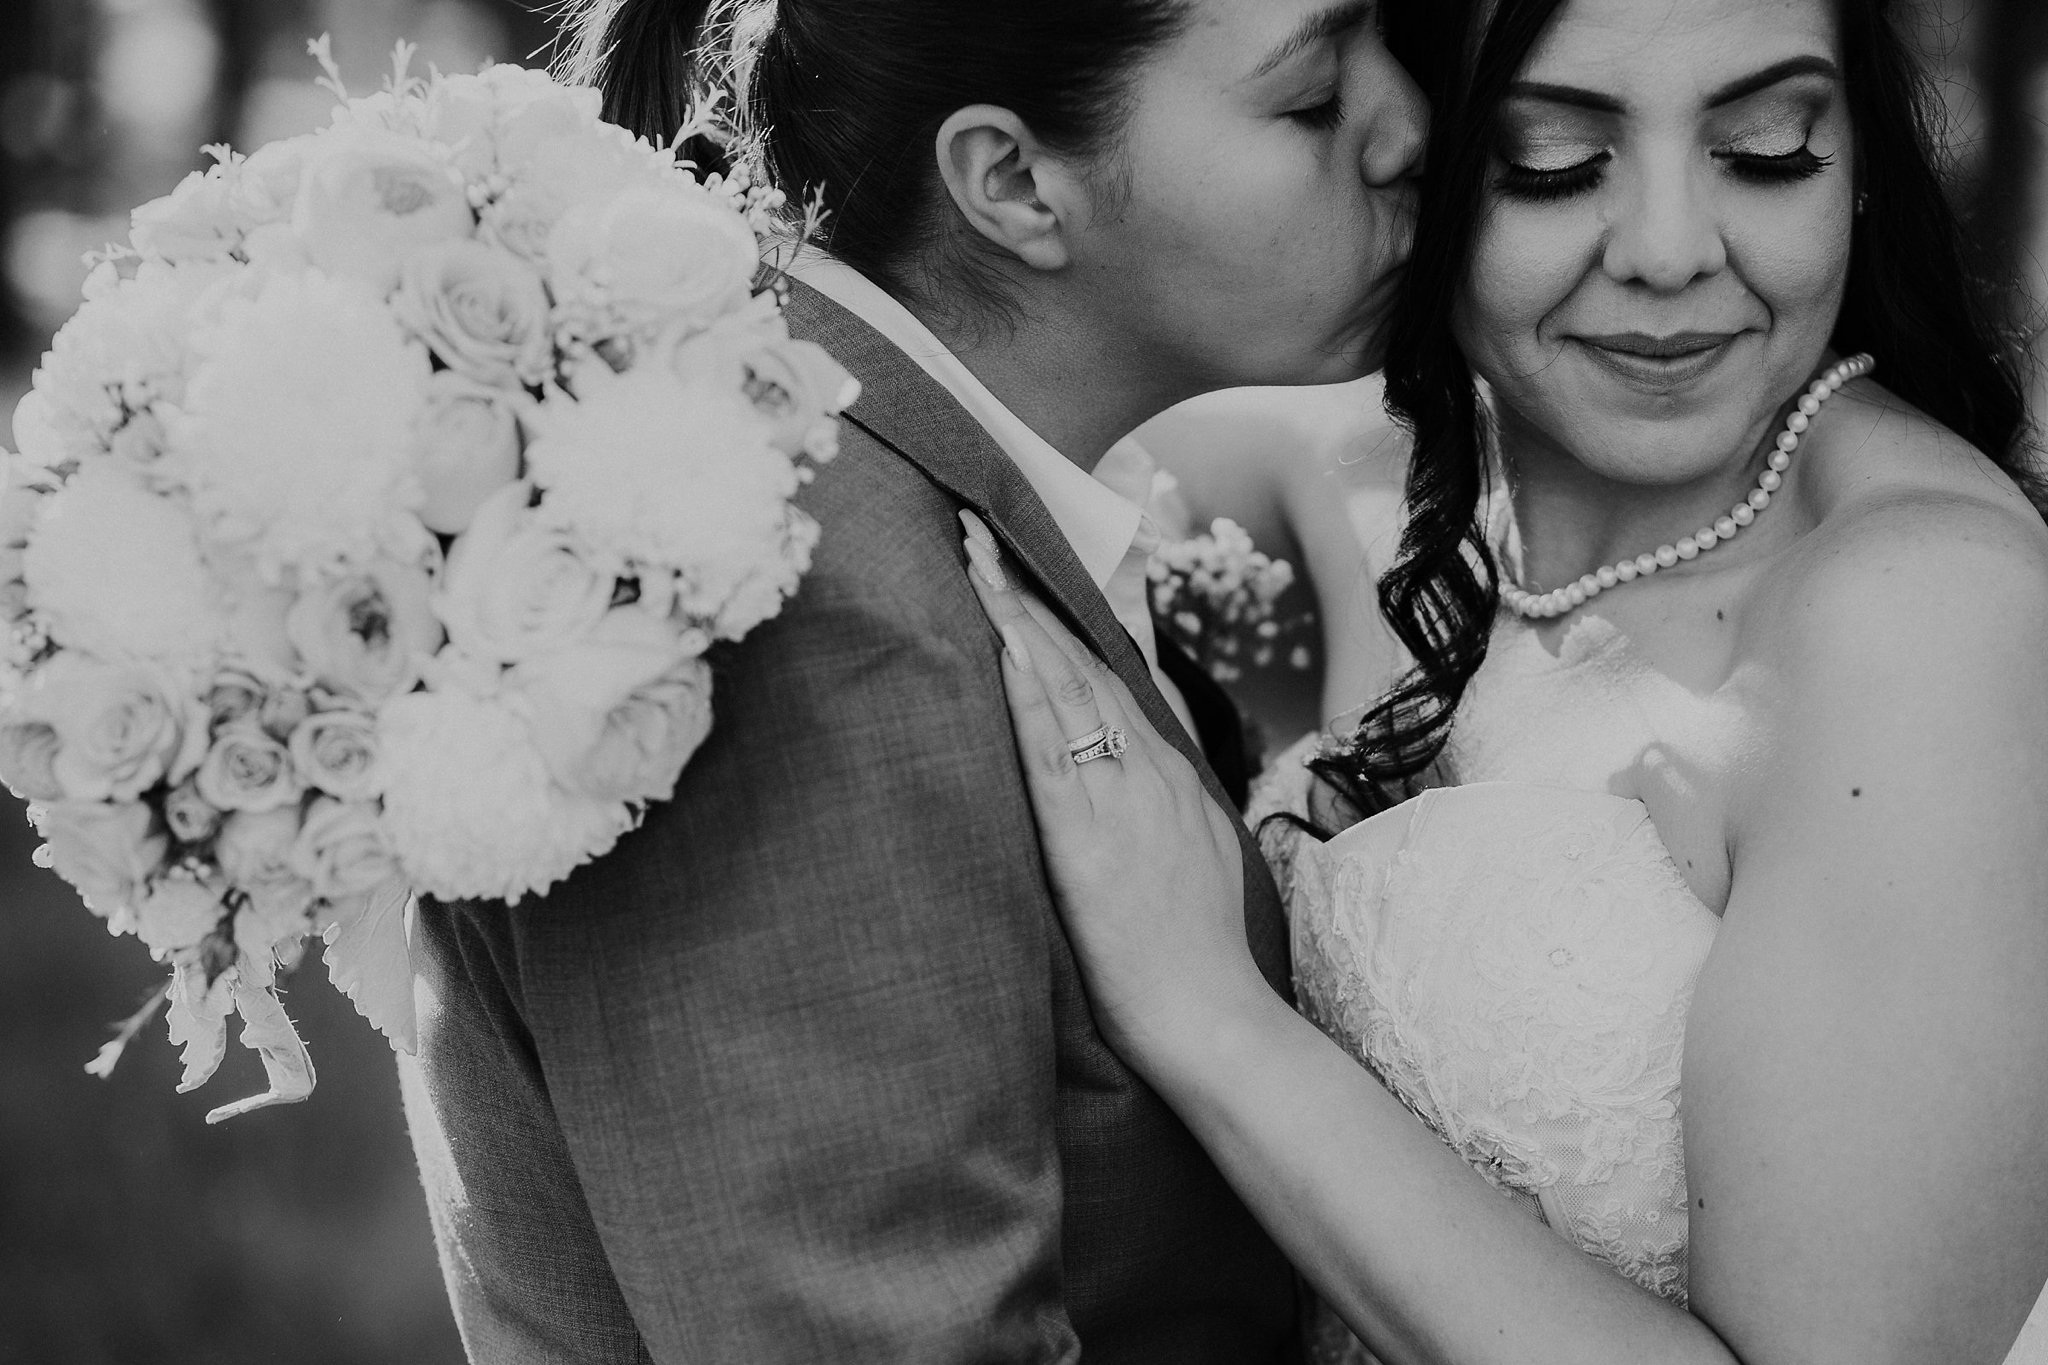 Alicia+lucia+photography+-+albuquerque+wedding+photographer+-+santa+fe+wedding+photography+-+new+mexico+wedding+photographer+-+new+mexico+wedding+-+albuquerque+wedding+-+santa+fe+wedding+-+wedding+romantics_0031.jpg